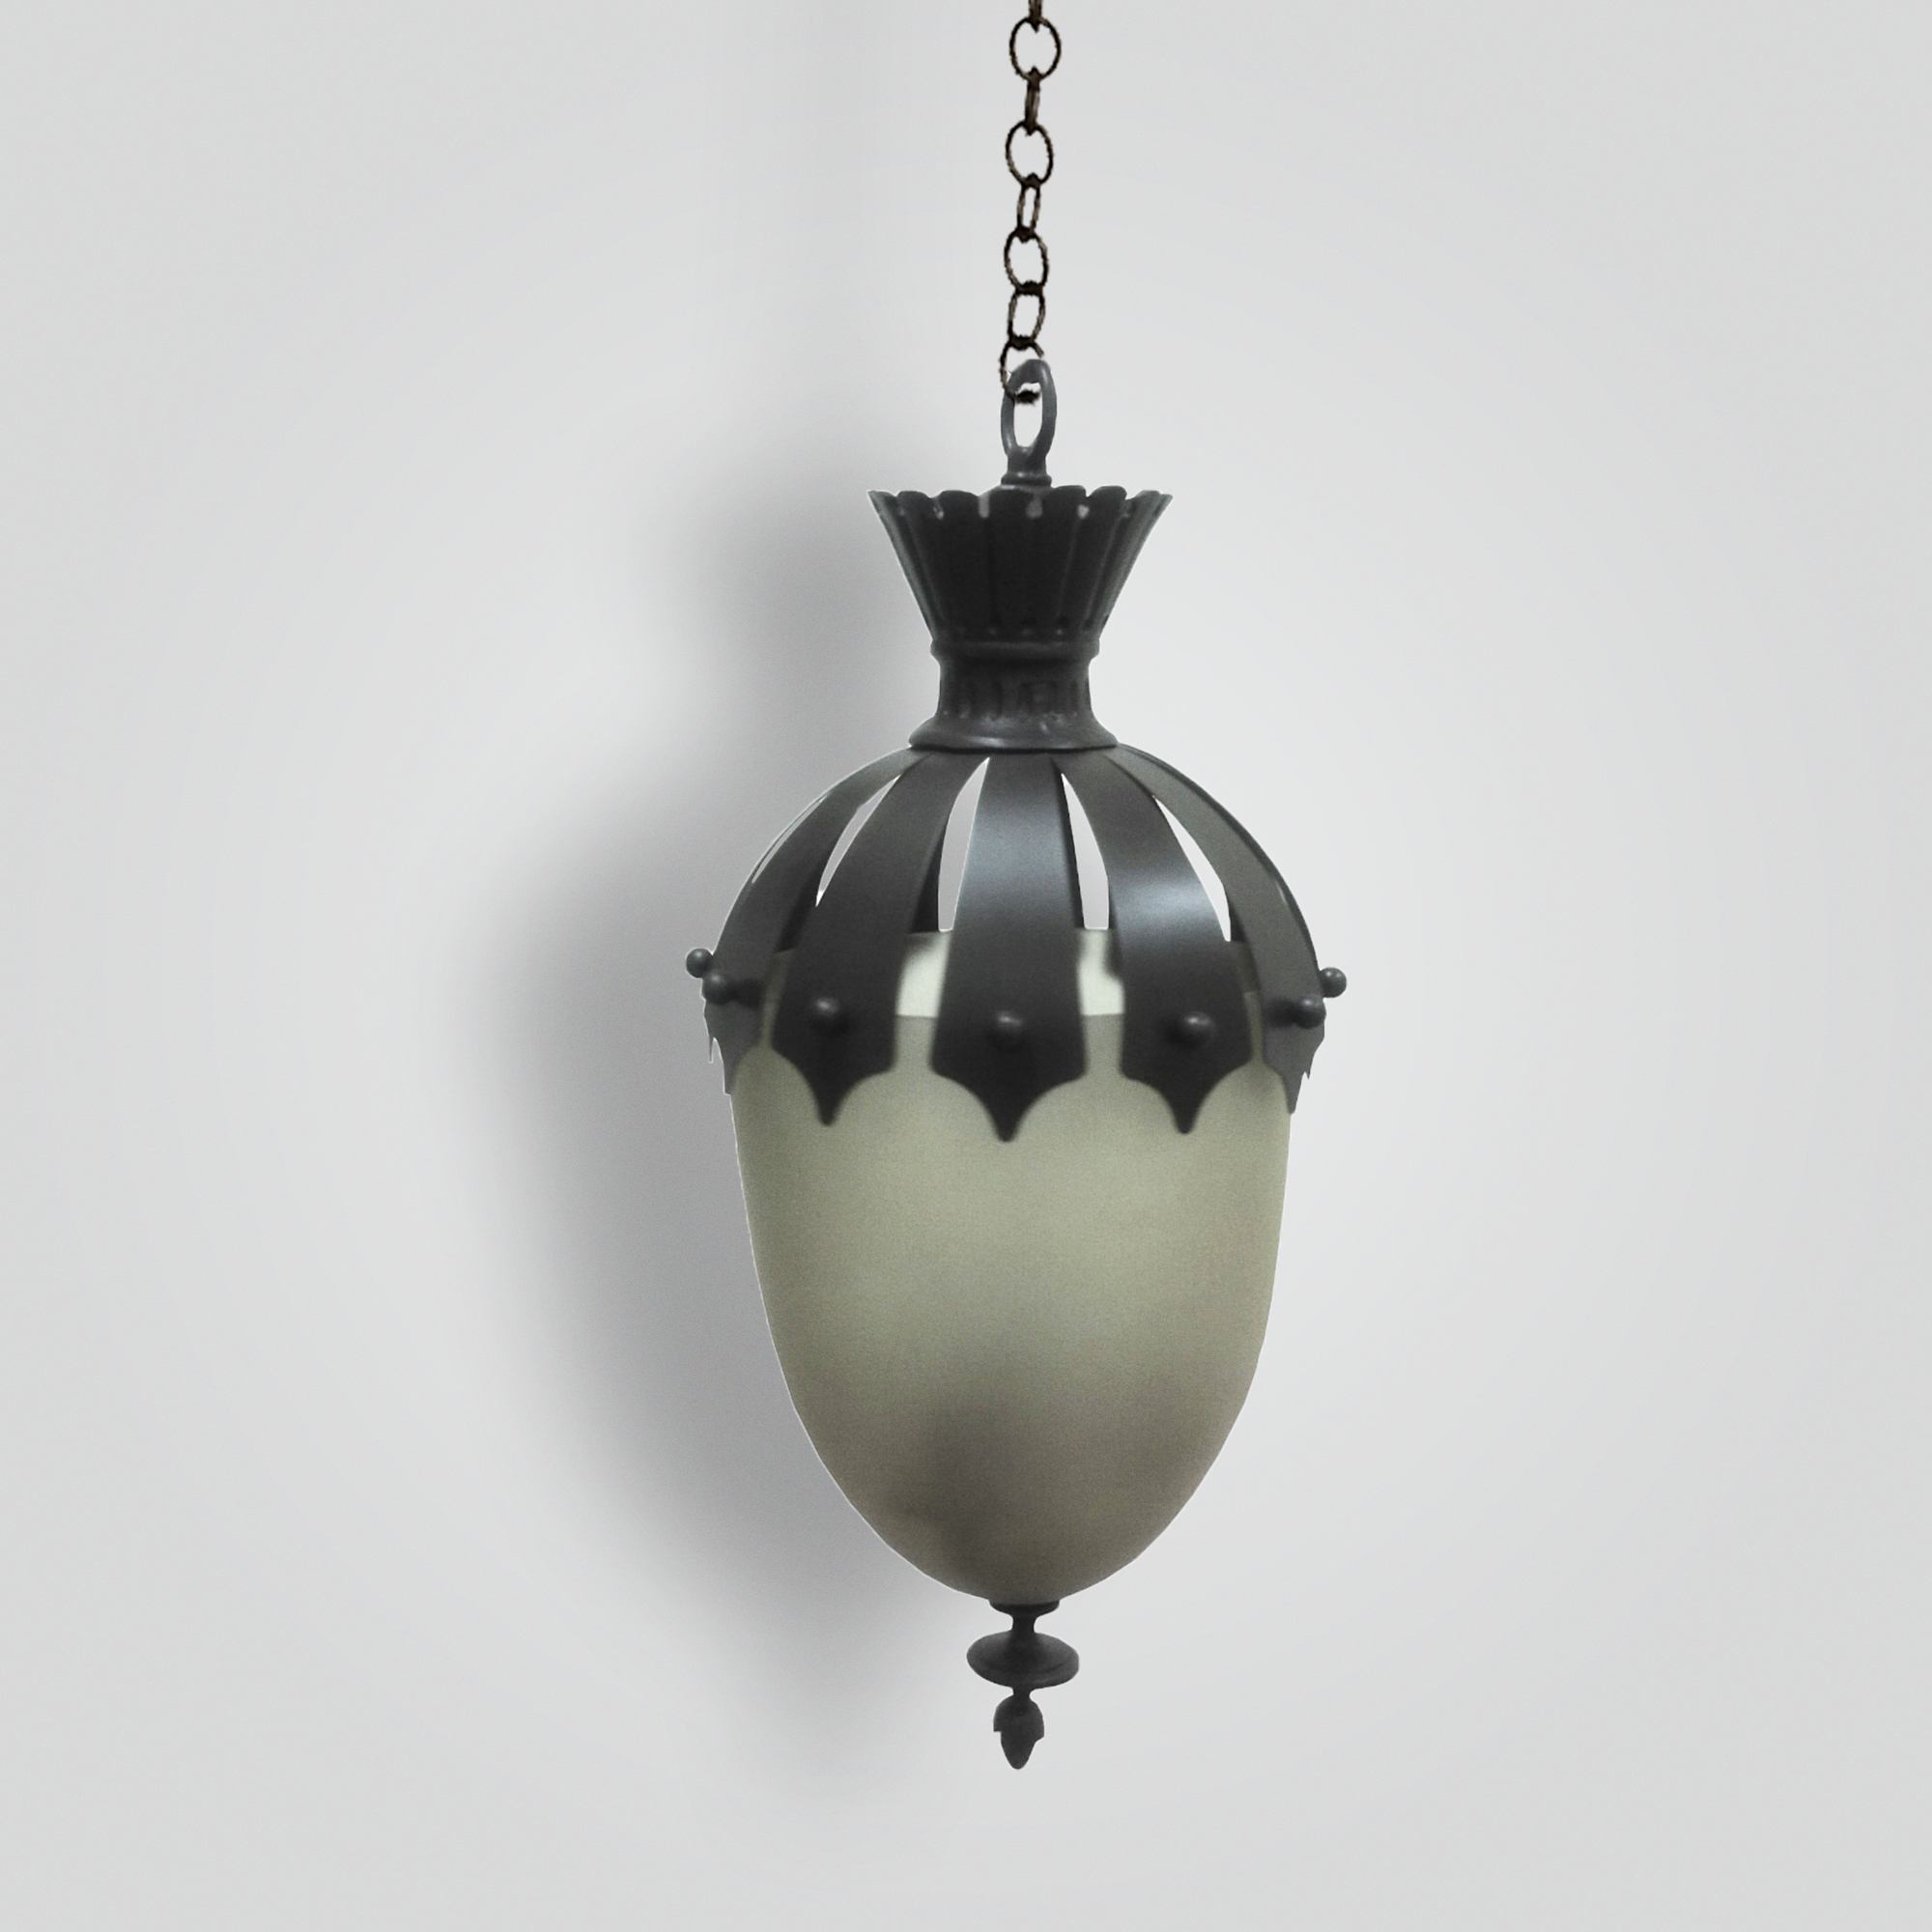 7015-mb1-br-h-sh-bell-jar-sandblasted-pyrex-glass-hanging-pendant-with-cast-ornament – ADG Lighting Collection